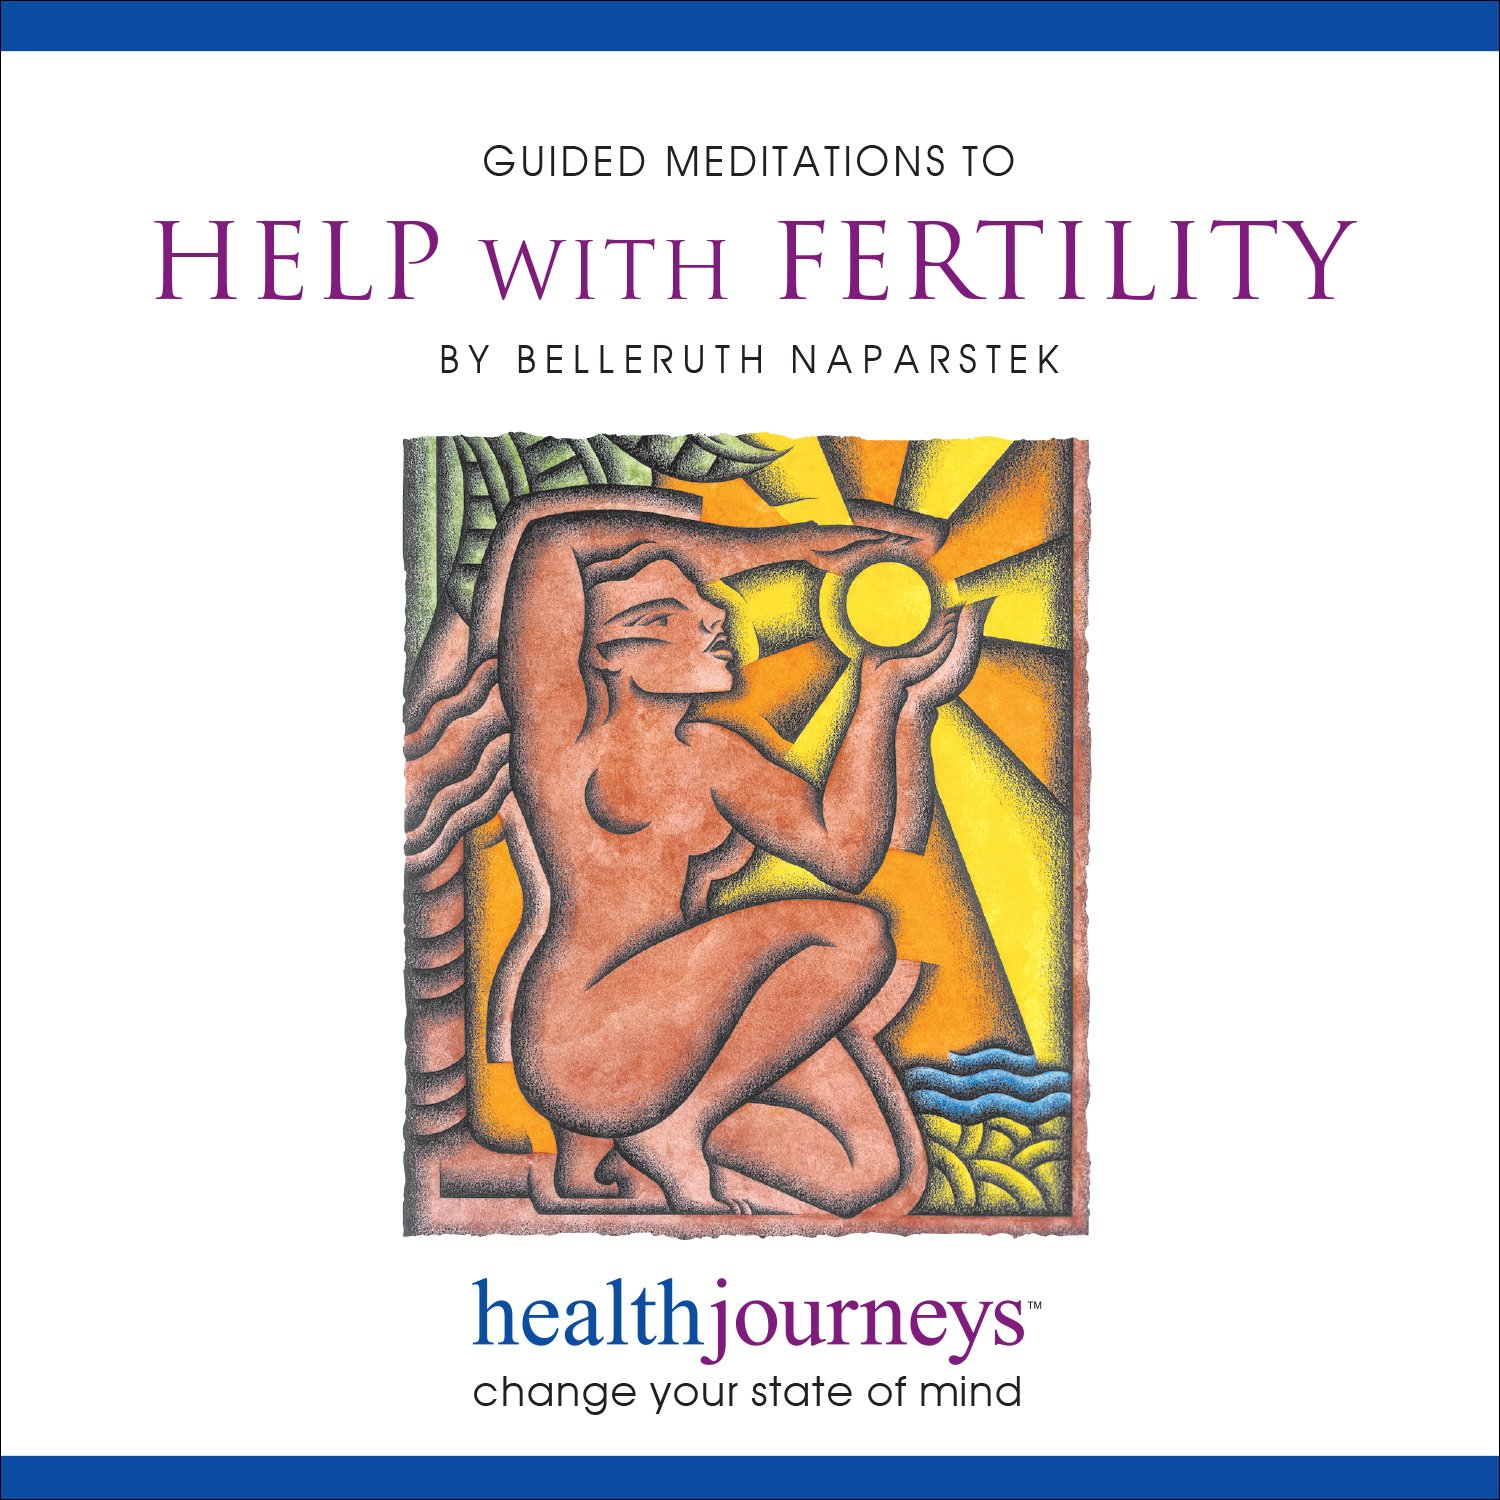 Meditations to Help with Fertility, Guided Imagery Exercises for Fertility Issues from Conception to Resolution, Relax Mind and Body, Reinforce Self-Esteem and Promote Feelings of Protection and Support While Envisioning Successful Fertilization with Heal